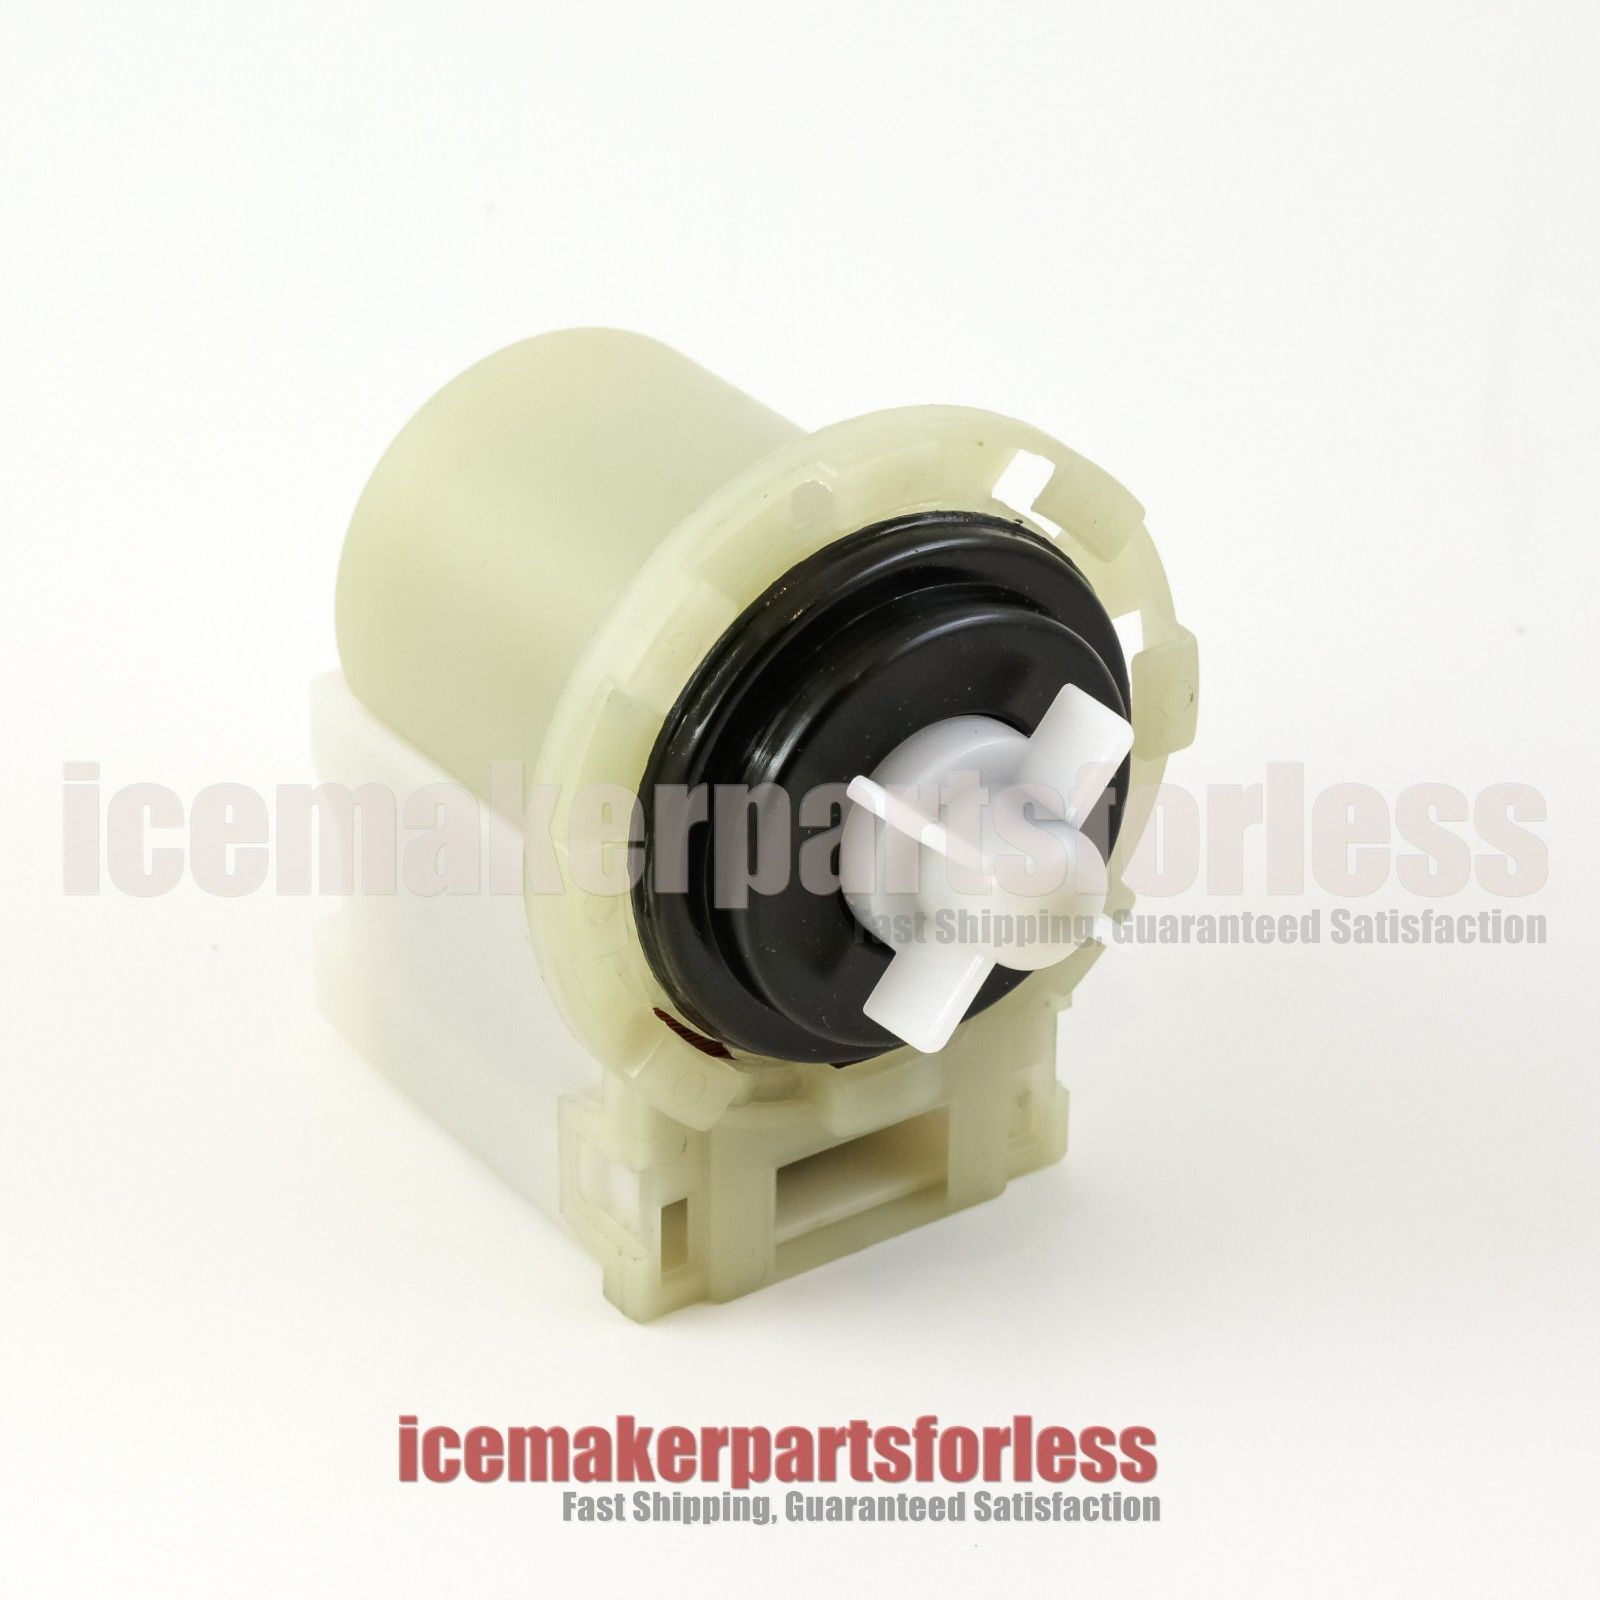 Kenmore whirlpool drain pump motor 8540024 w10130913 for How to test a washer drain pump motor